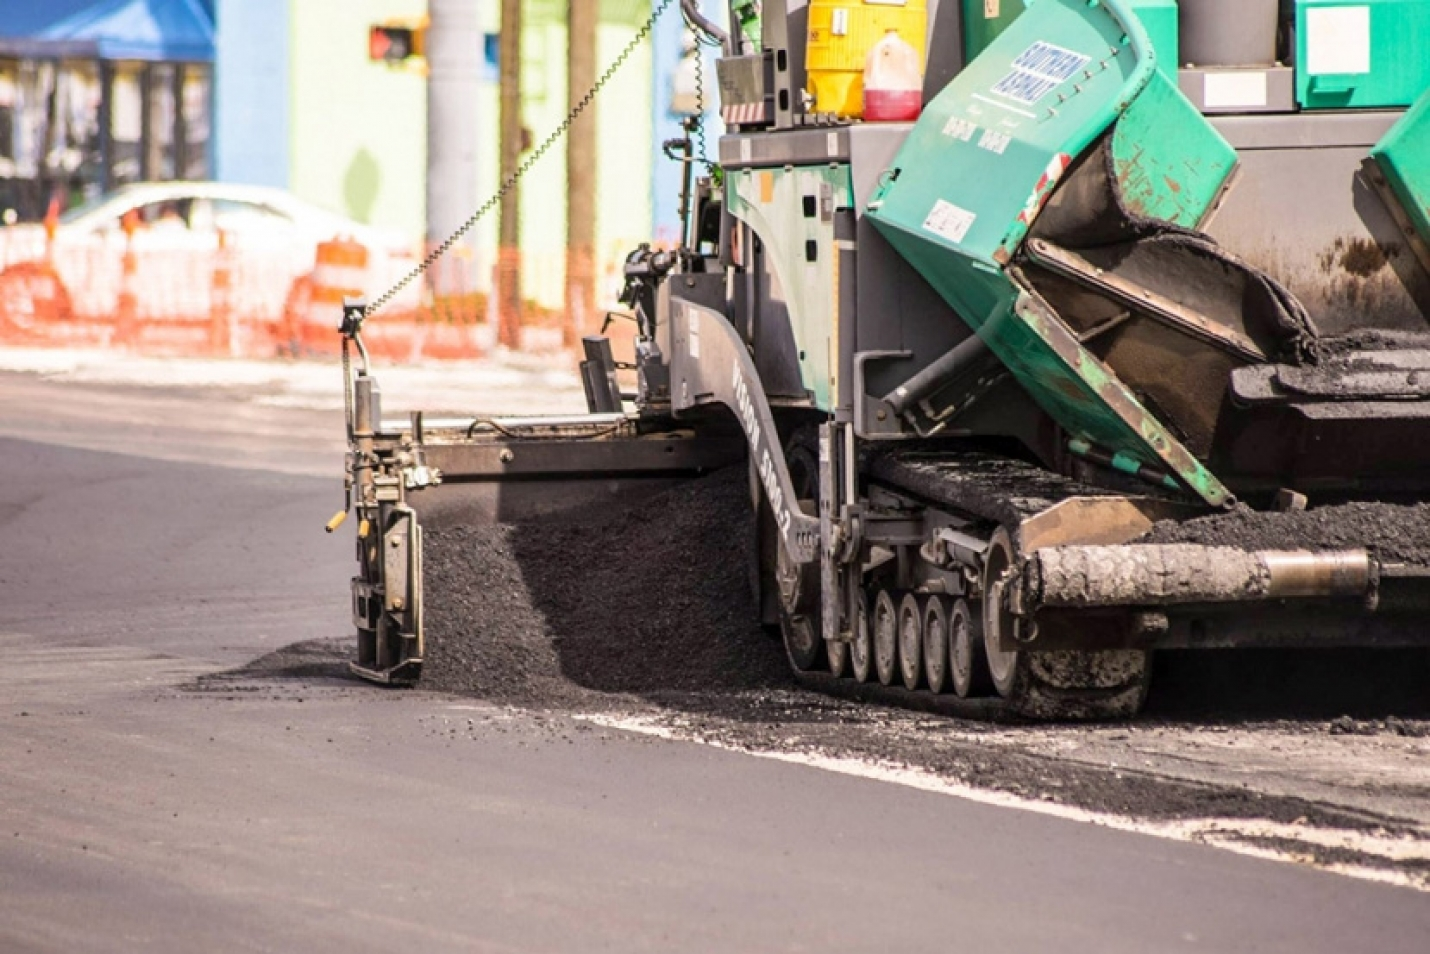 Paving Project Delayed For Several Roads In Carolina Beach